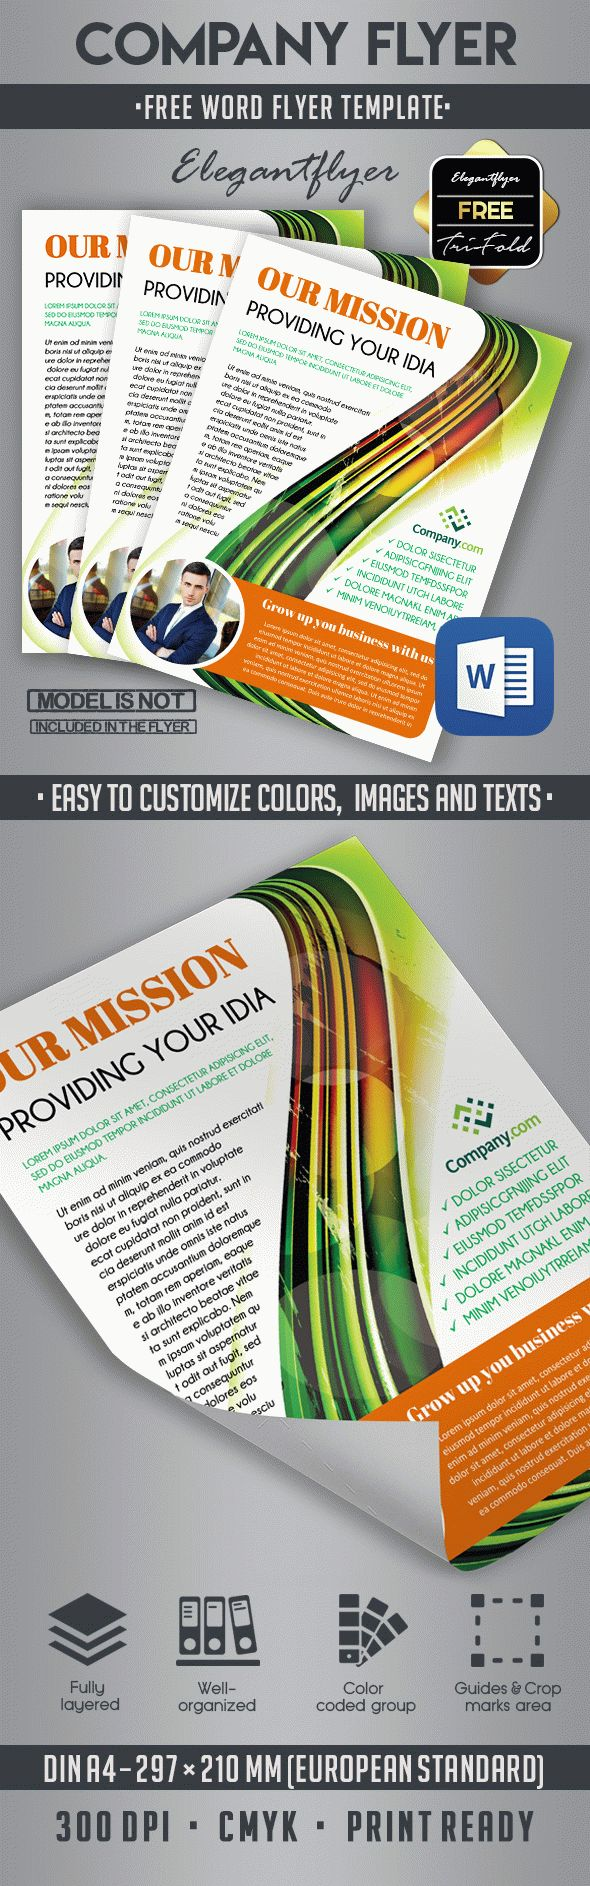 10 Best Business Flyer Templates In Word!  Free Flyer Templates Word